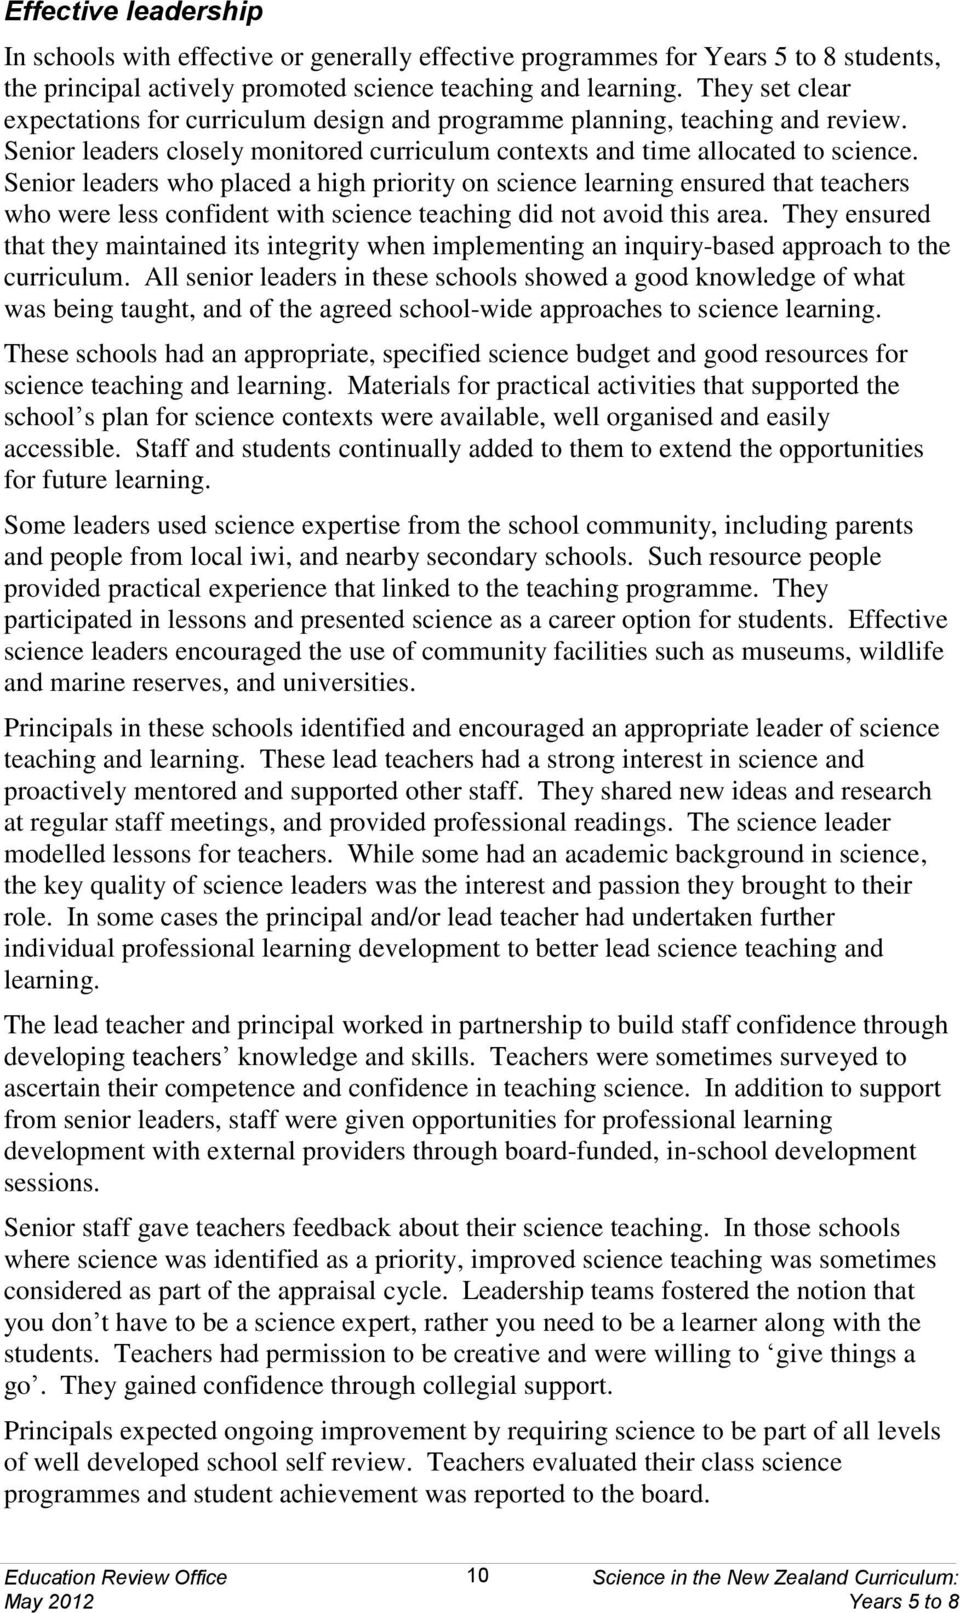 Senior leaders who placed a high priority on science learning ensured that teachers who were less confident with science teaching did not avoid this area.